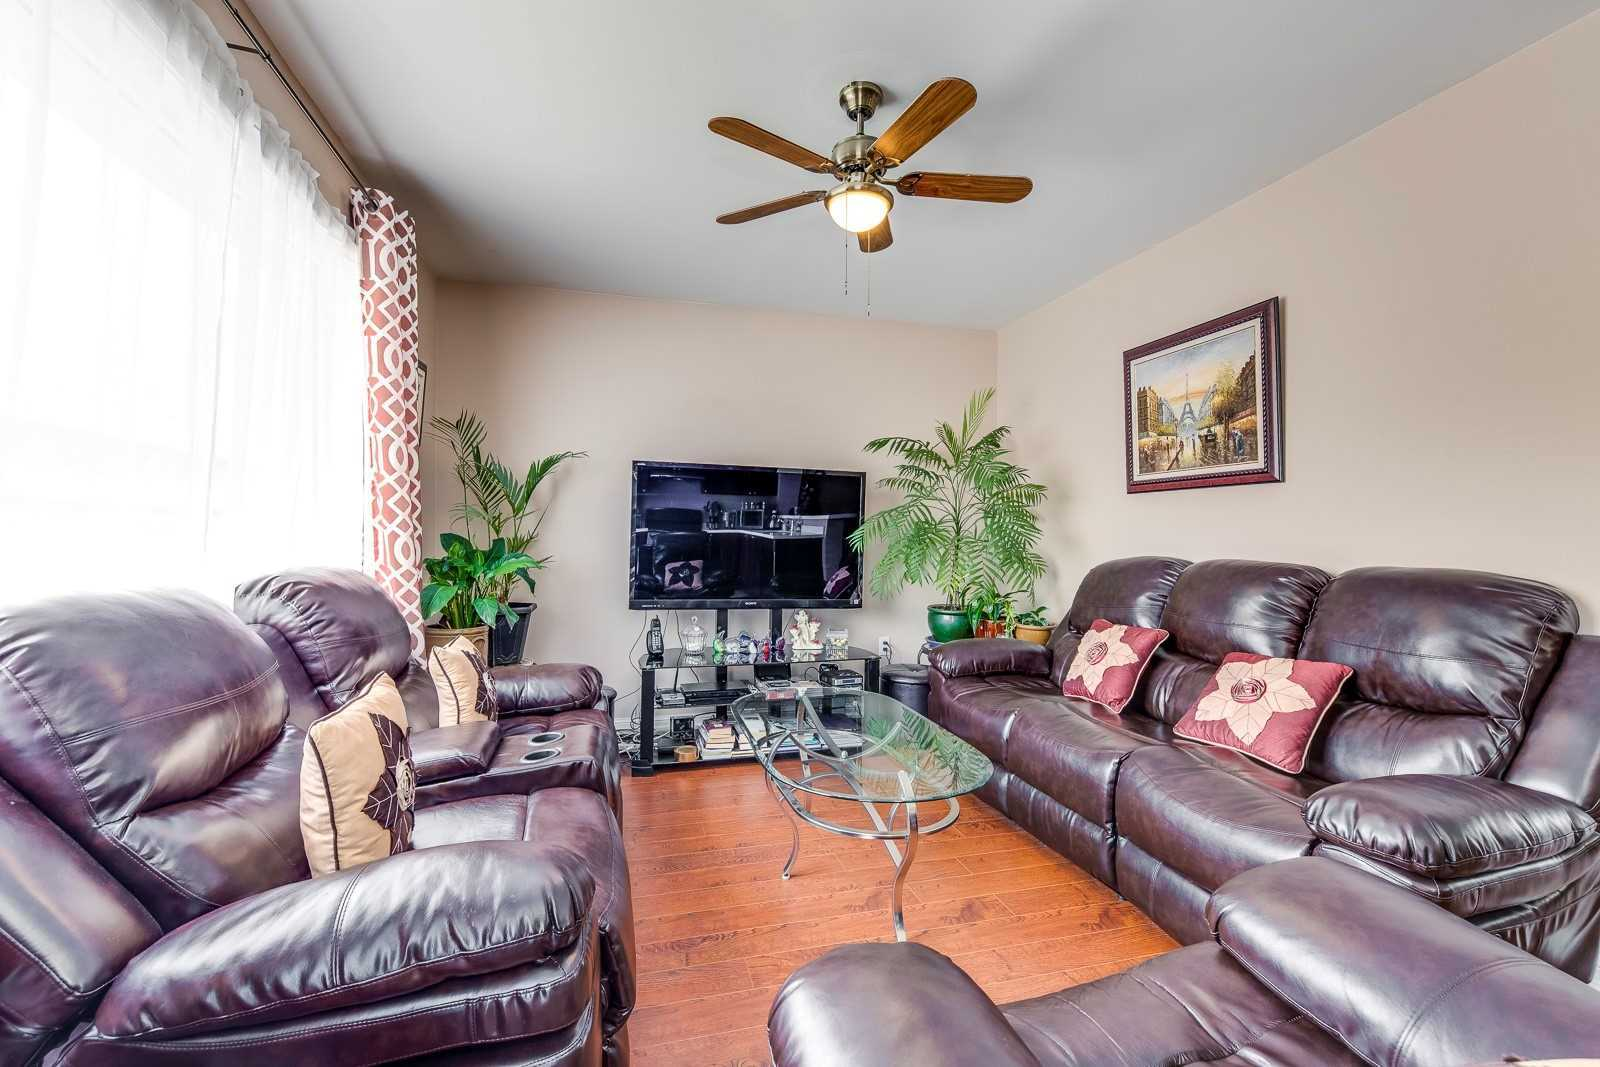 Image 16 of 20 showing inside of 3 Bedroom Att/Row/Twnhouse 2-Storey house for sale at 682 Edwards Ave, Milton L9T6B3